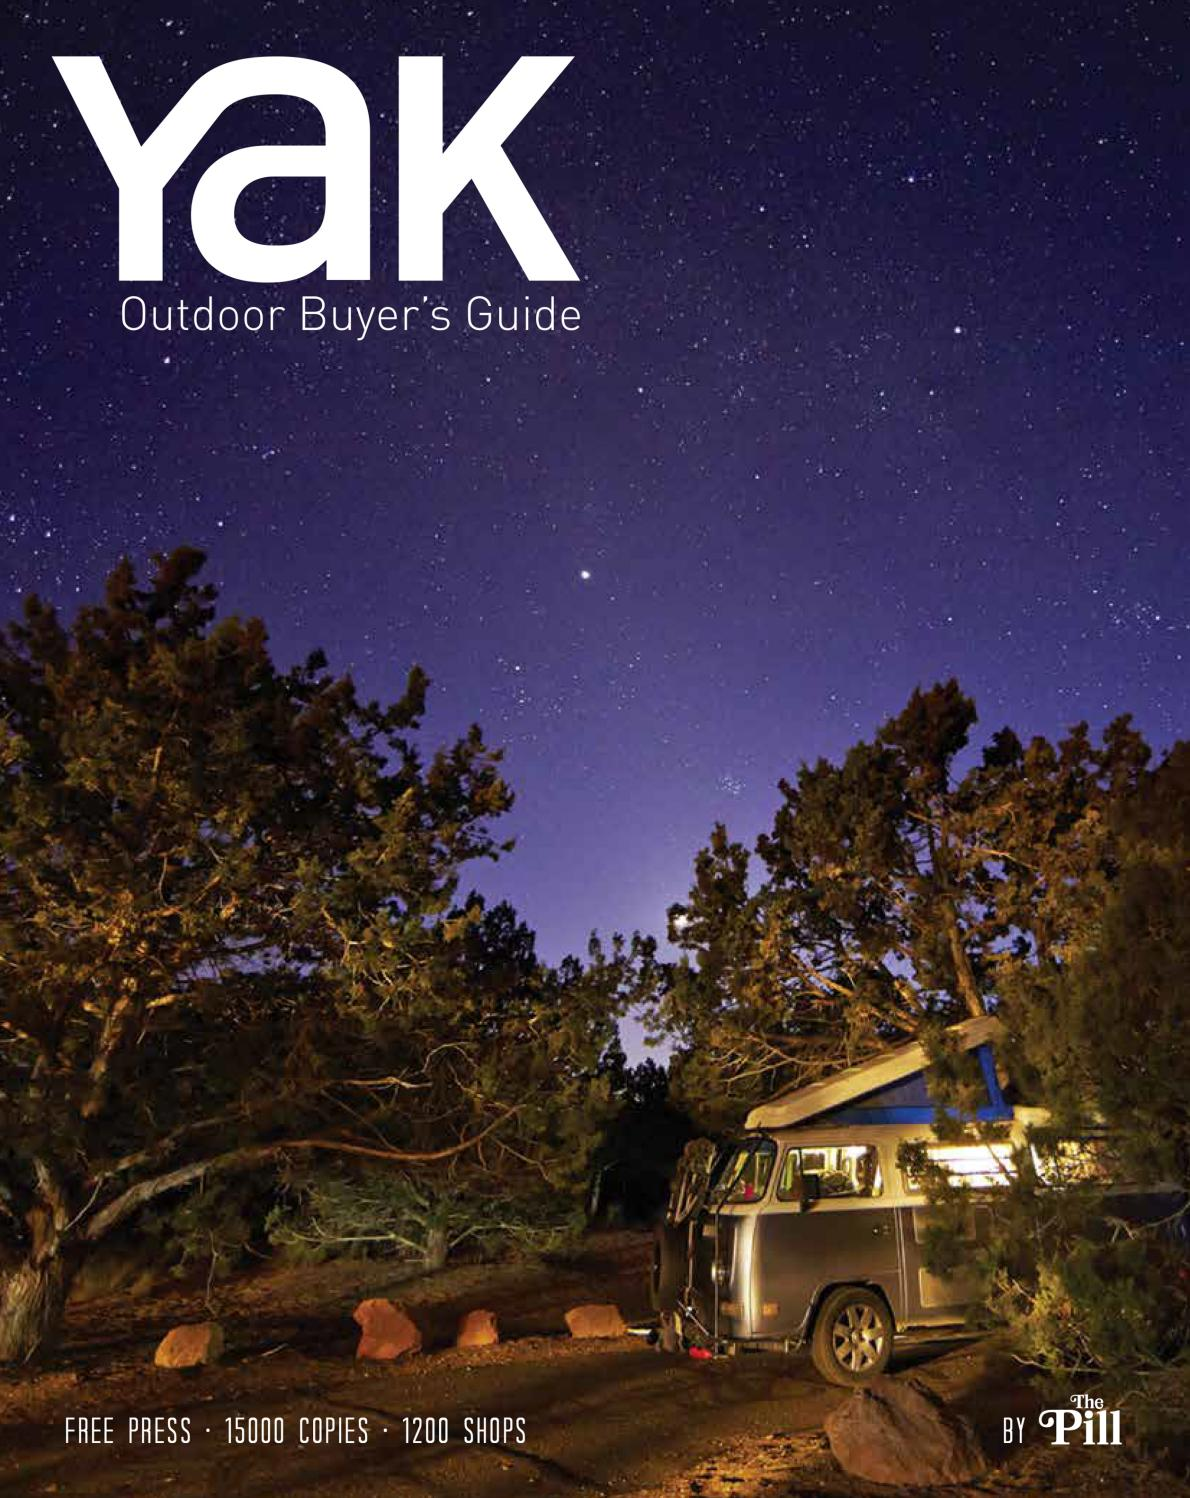 83054c887214fd Yak Outdoor Buyer's Guide 2014 by Hand Communication - issuu